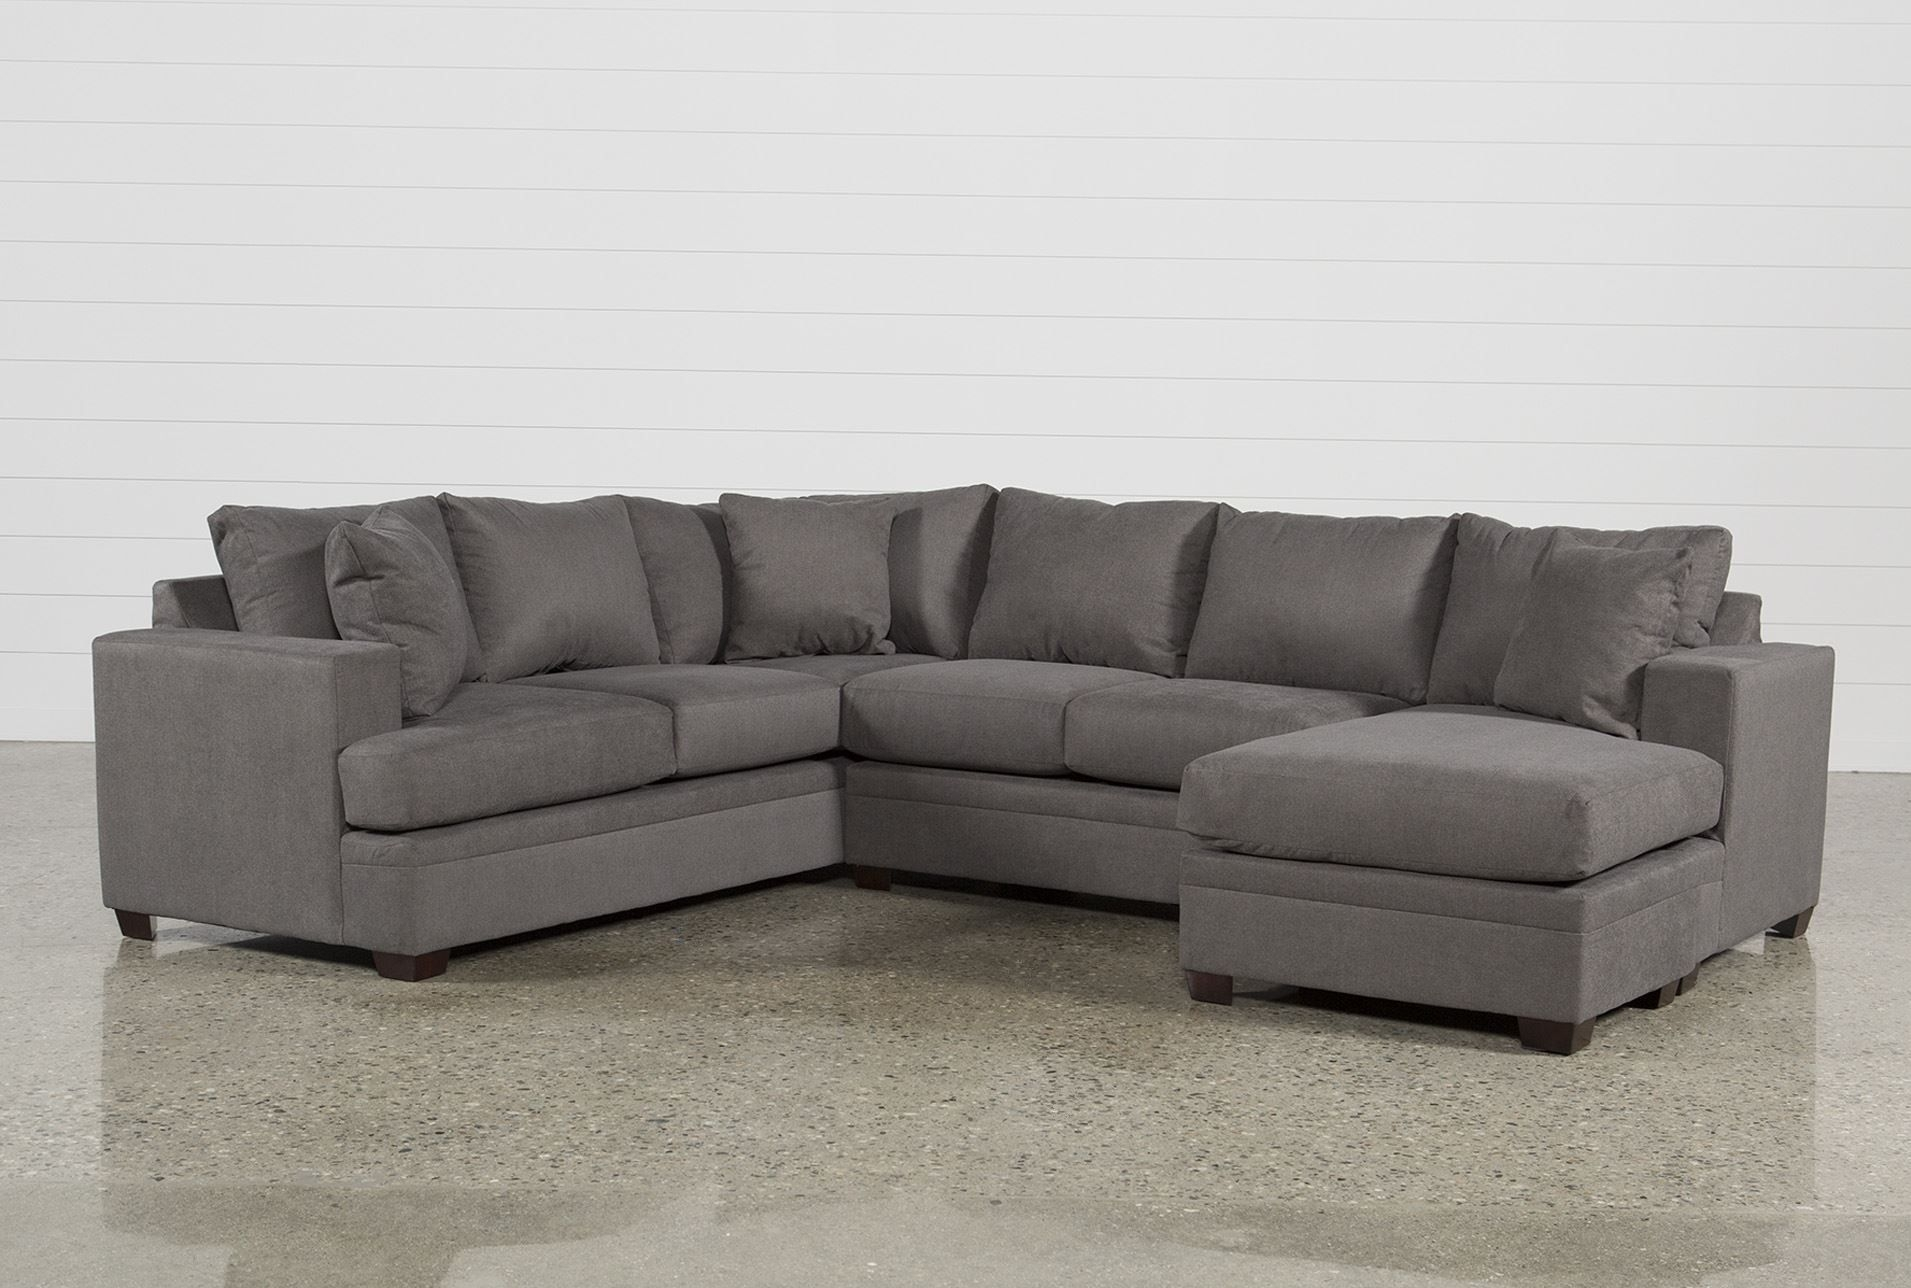 Kerri 2 Piece Sectional W/raf Chaise In 2018 | Products | Pinterest With Arrowmask 2 Piece Sectionals With Sleeper & Left Facing Chaise (Image 11 of 25)